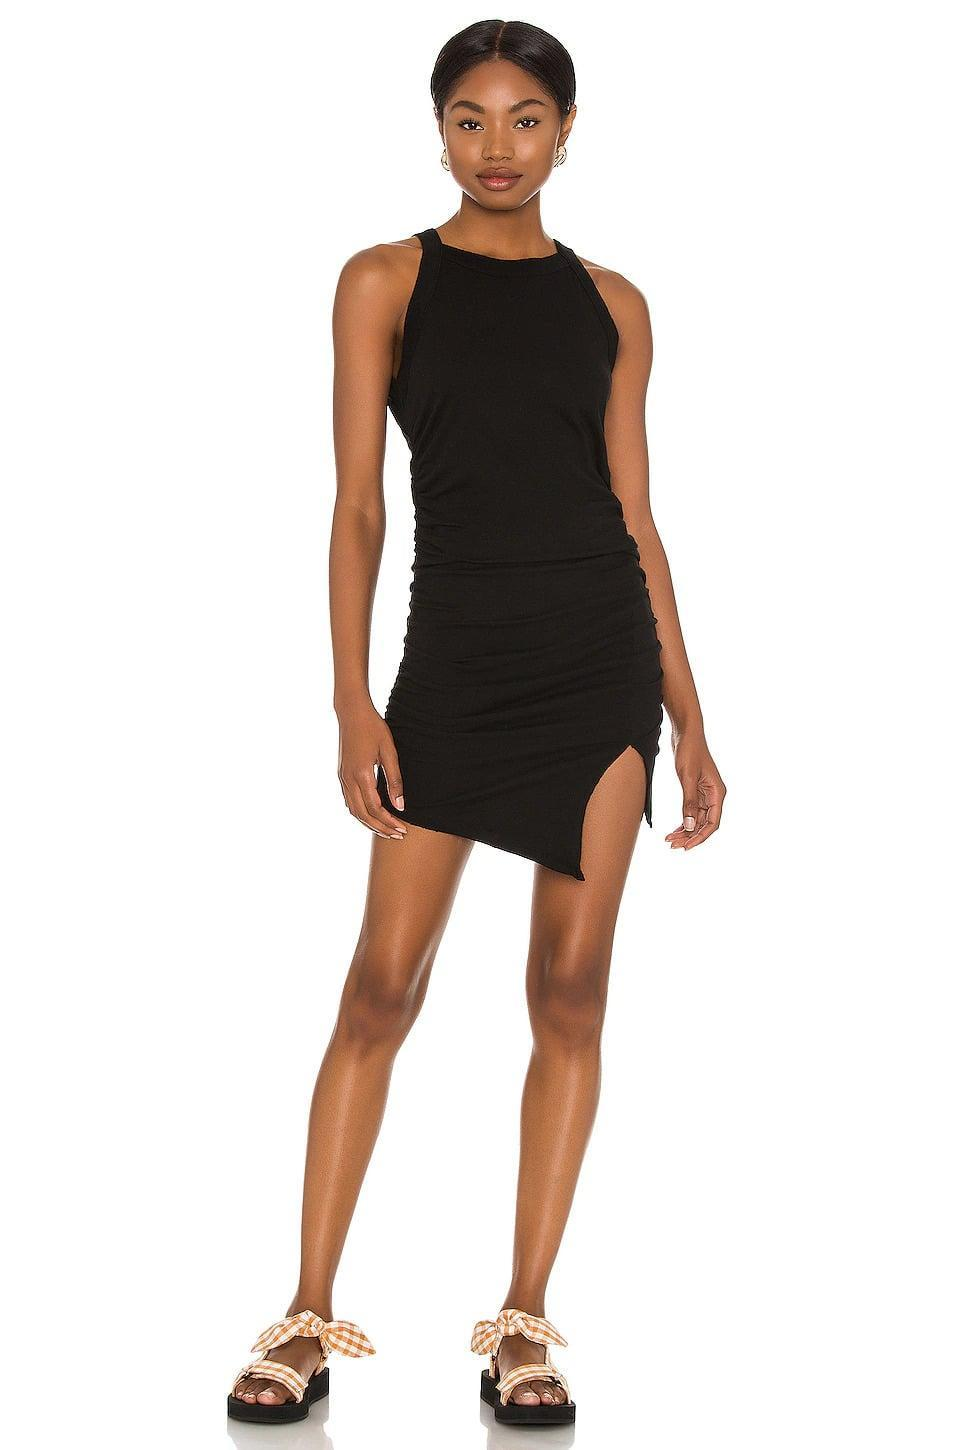 <p>You can't go wrong with an LBD and the <span>n:philanthropy Bix Dress </span> ($89, originally $148) is such a staple find. The side slit with ruched detailing is so flattering. </p>